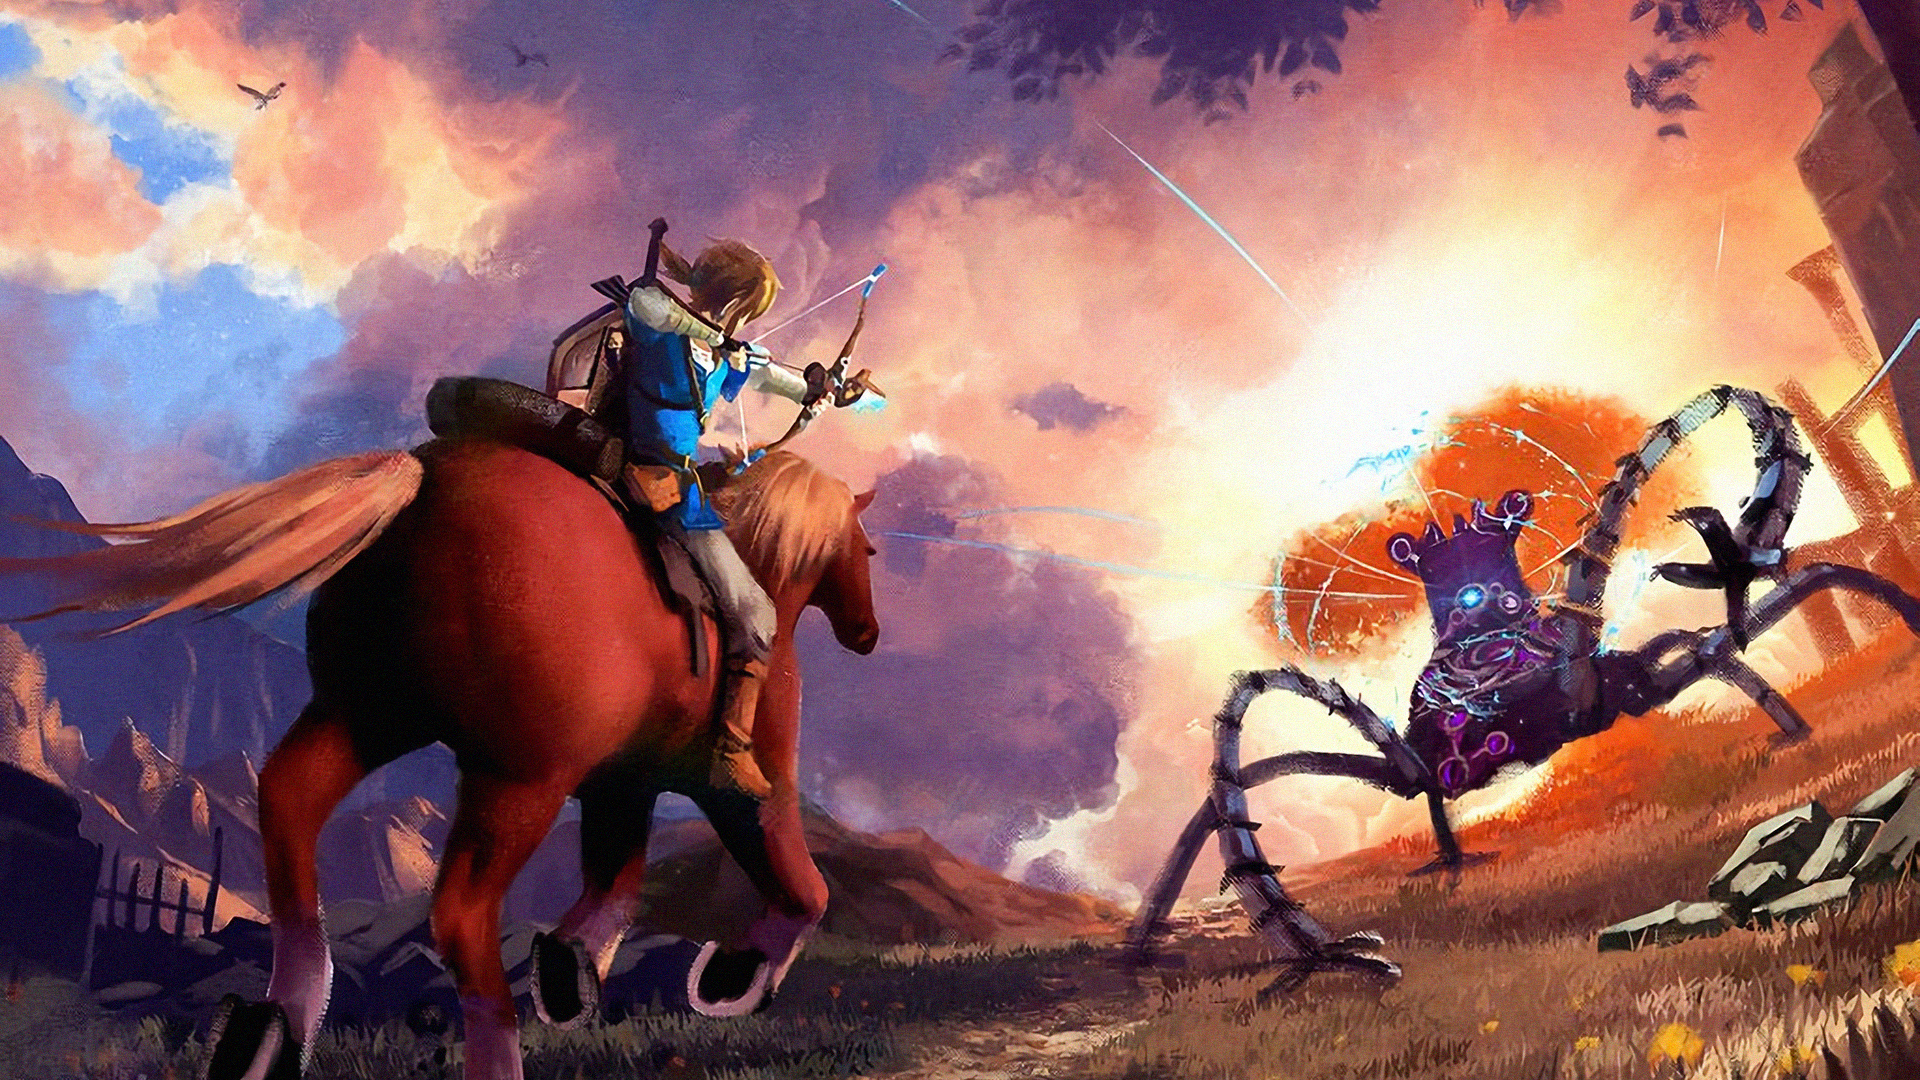 1920x1080 Legend Of Zelda Breath Of The Wild Laptop Full Hd 1080p